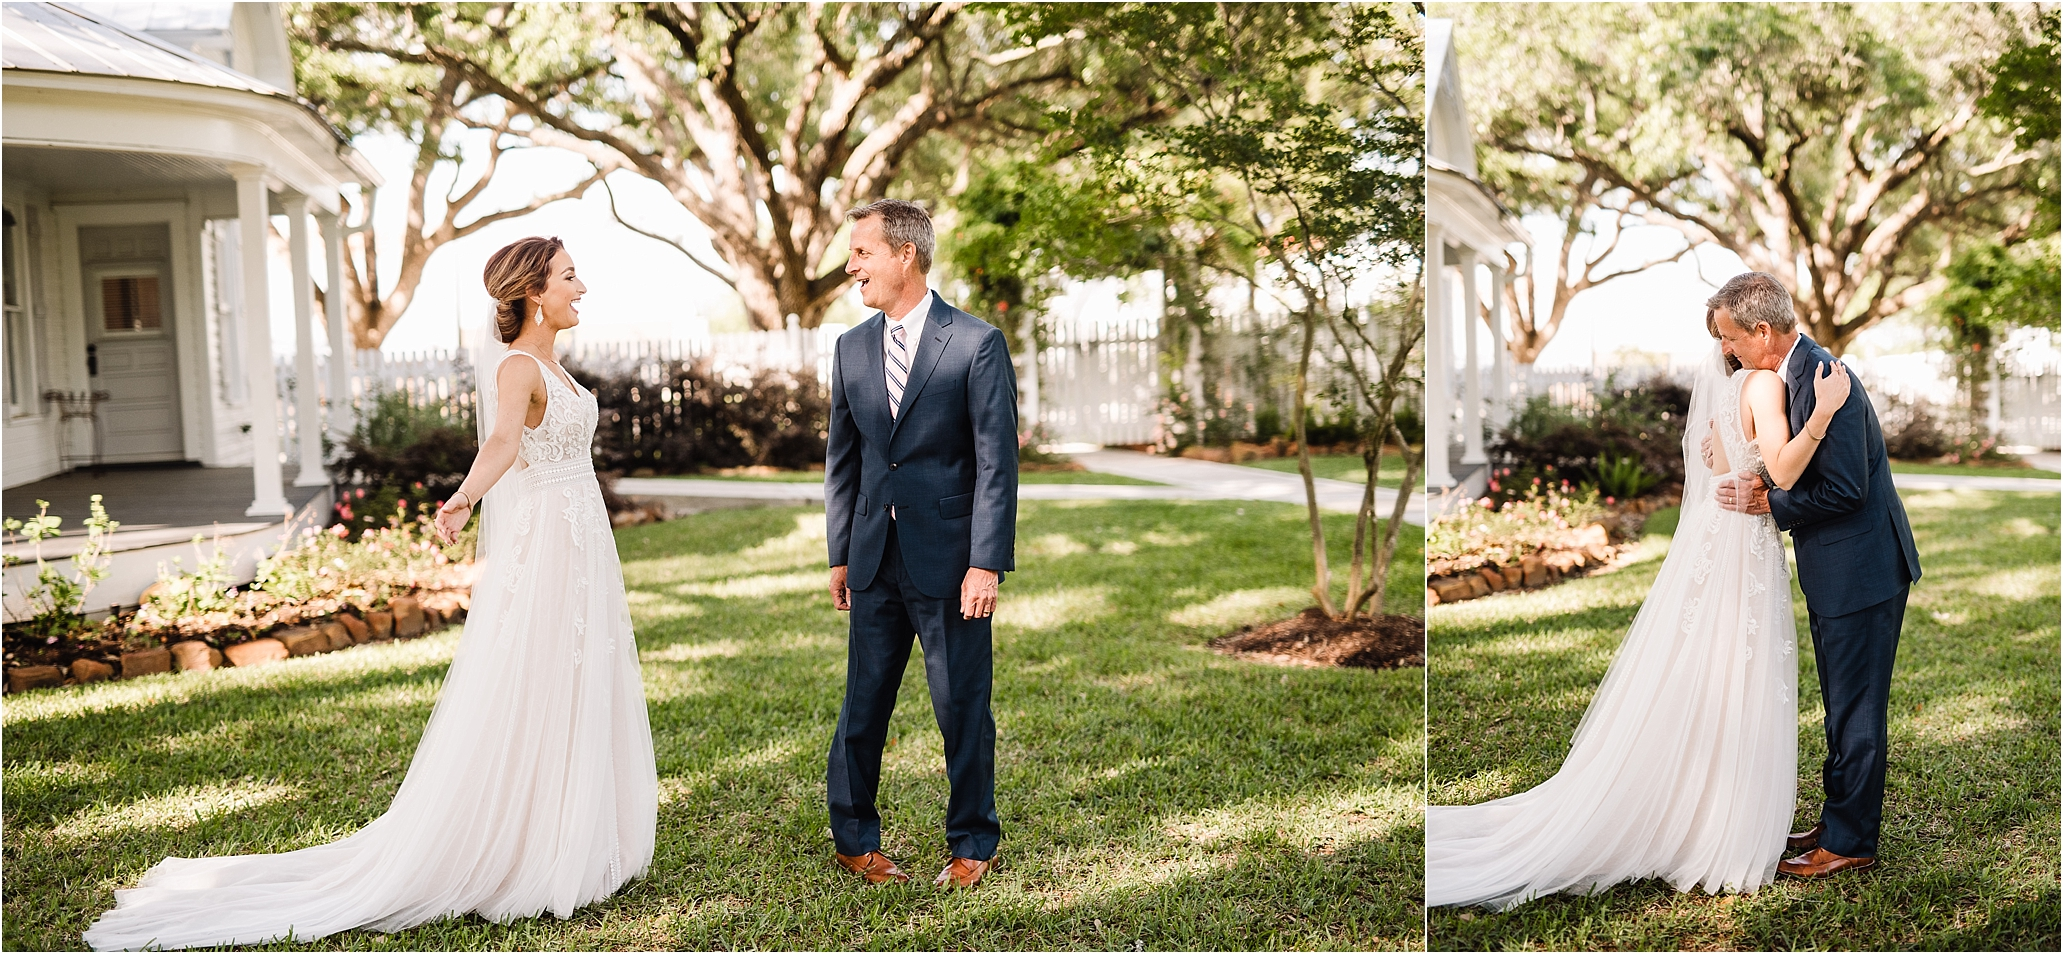 PattisonHouse_TexasWeddingPhotographer_CarlyCrockett&MattBrownWedding_0096.jpg